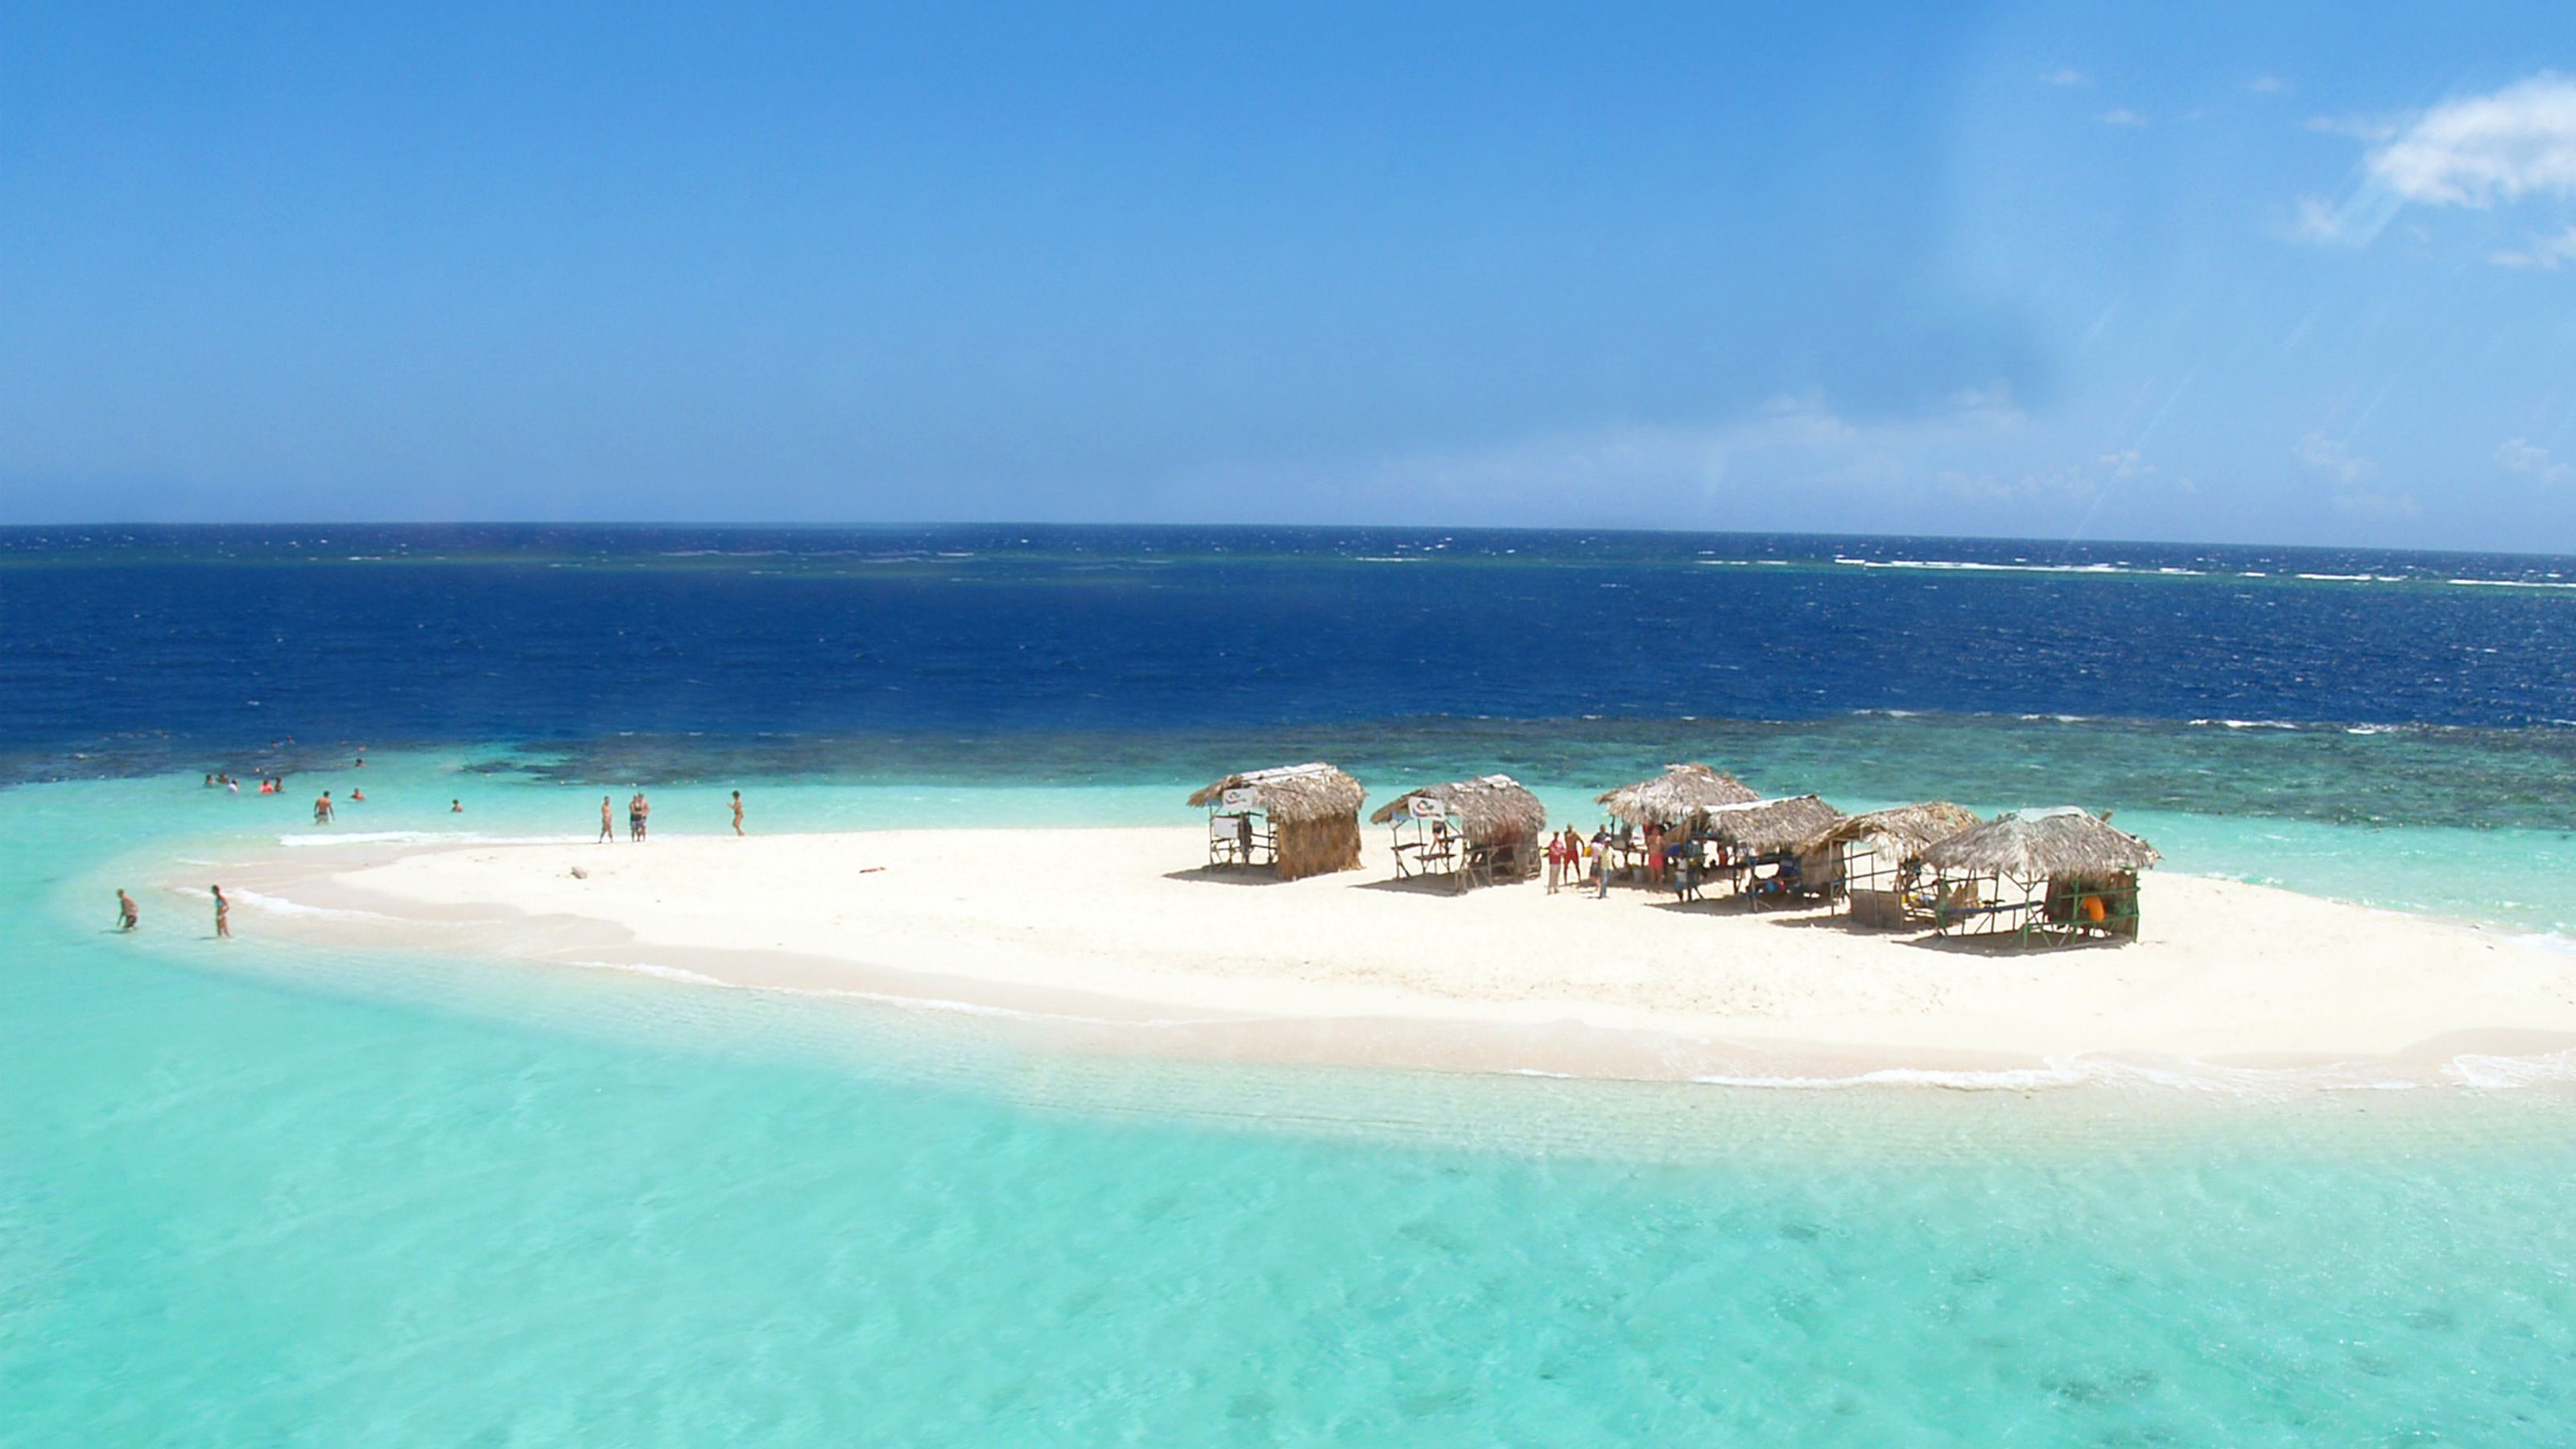 View of Sheltering huts on Paradise Island